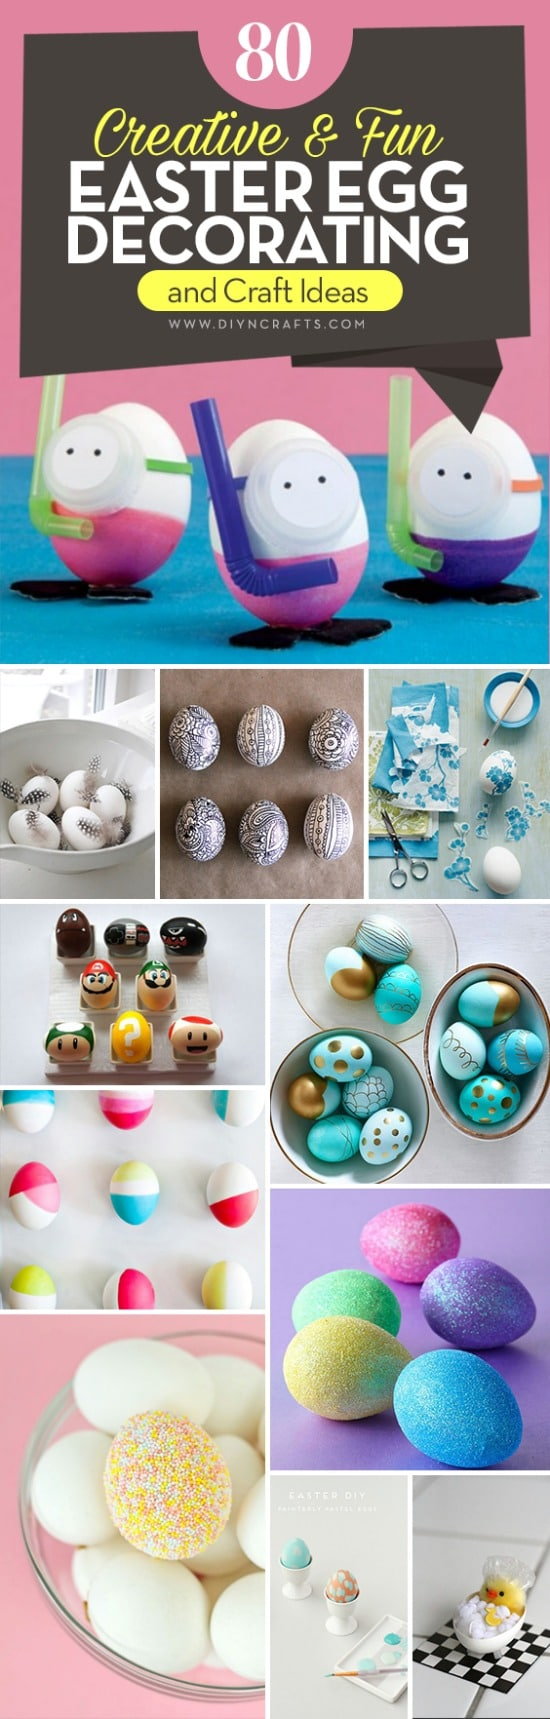 80 Creative and Fun Easter Egg Decorating and Craft Ideas {With tutorial links} Collection created and curated by diyncrafts.com team! <3